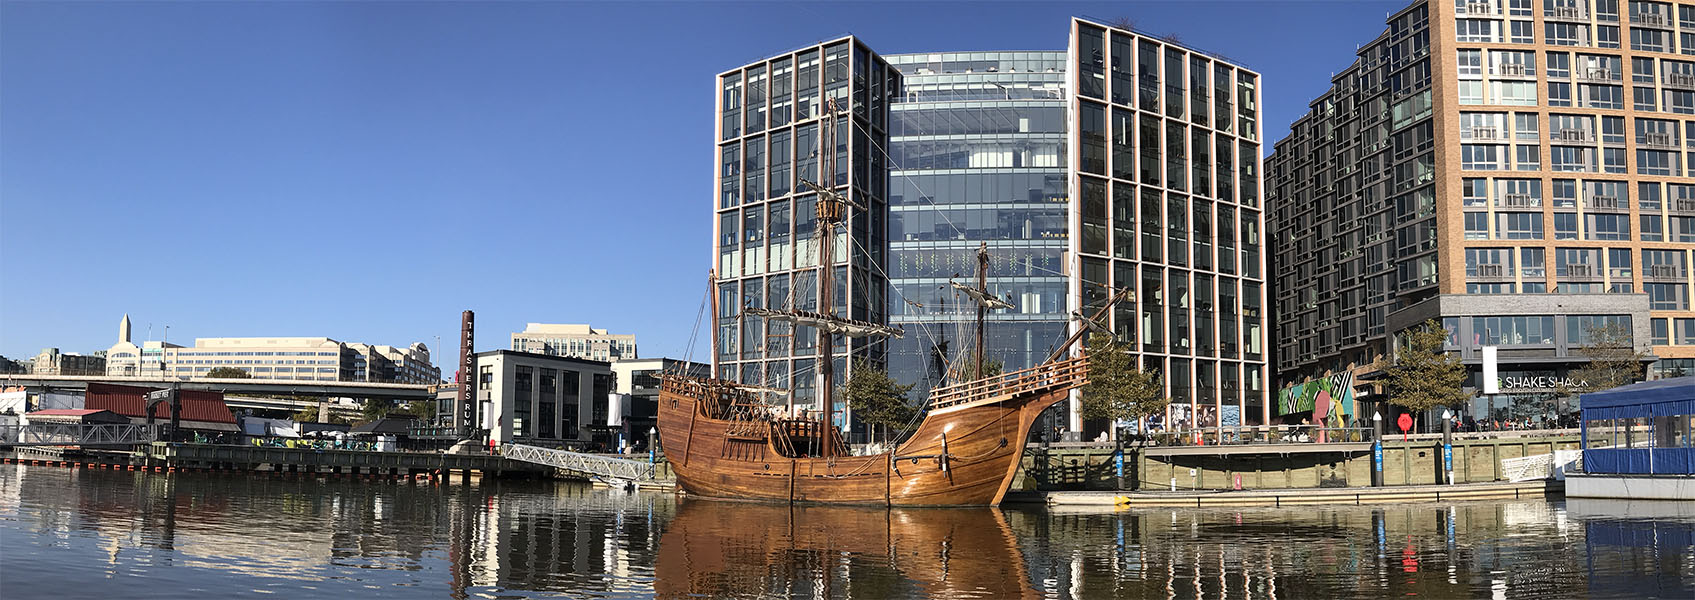 Photo of Replica Santa Maria Sailing Ship Visiting the Washington DC Waterfront with Modern Buildings in Background.